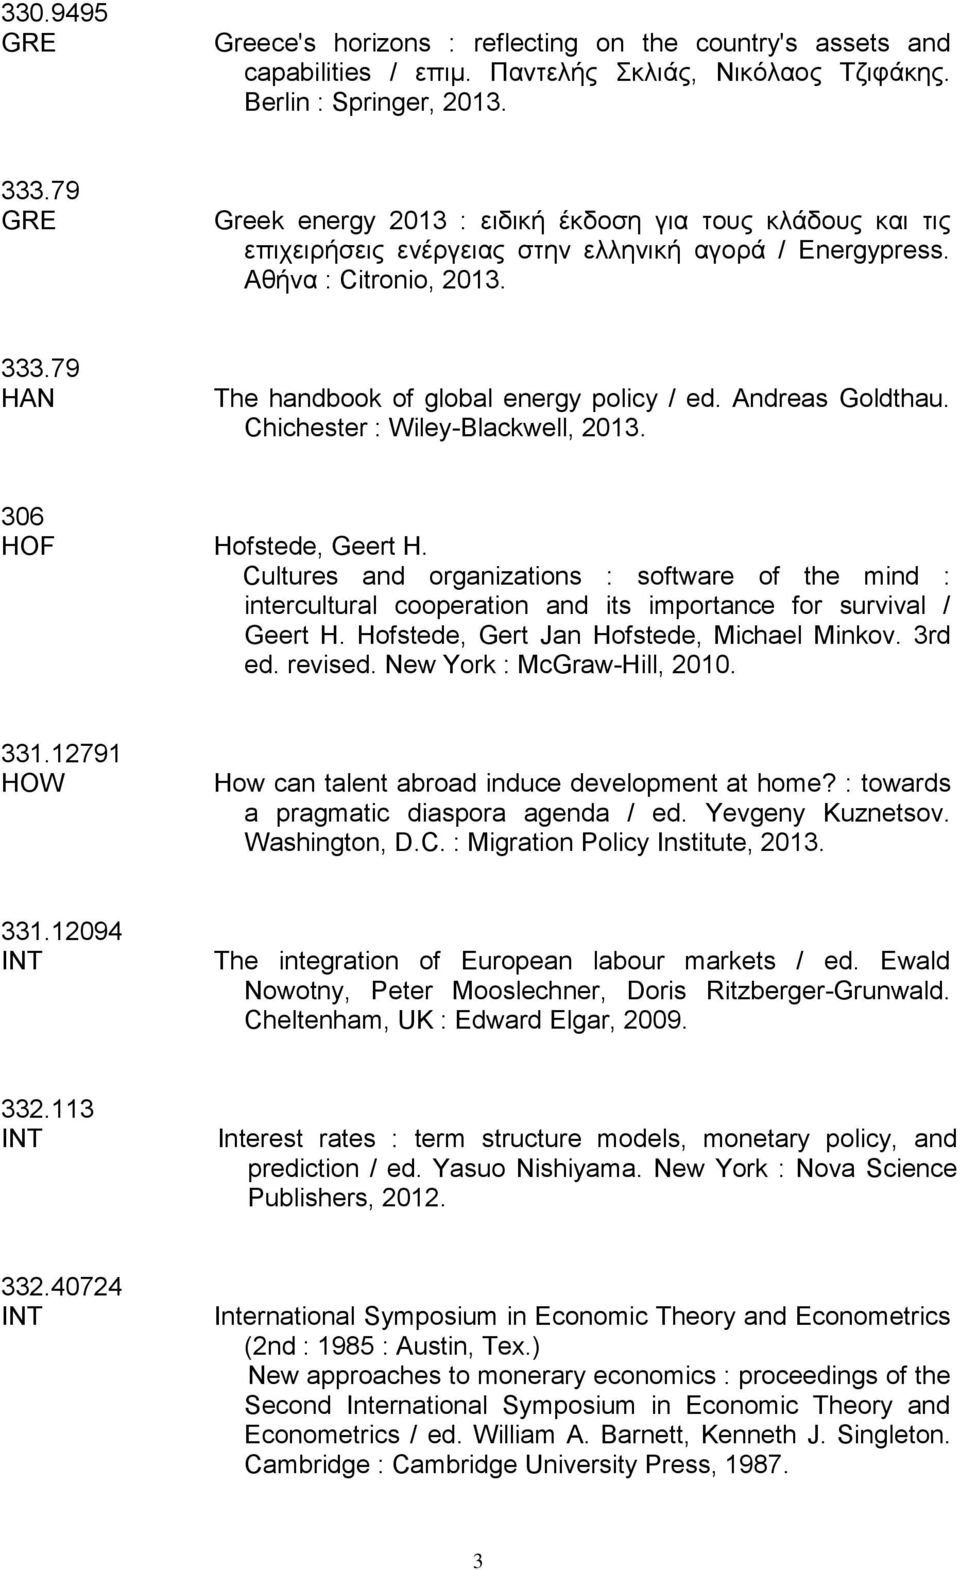 79 HAN The handbook of global energy policy / ed. Andreas Goldthau. Chichester : Wiley-Blackwell, 2013. 306 HOF Hofstede, Geert H.